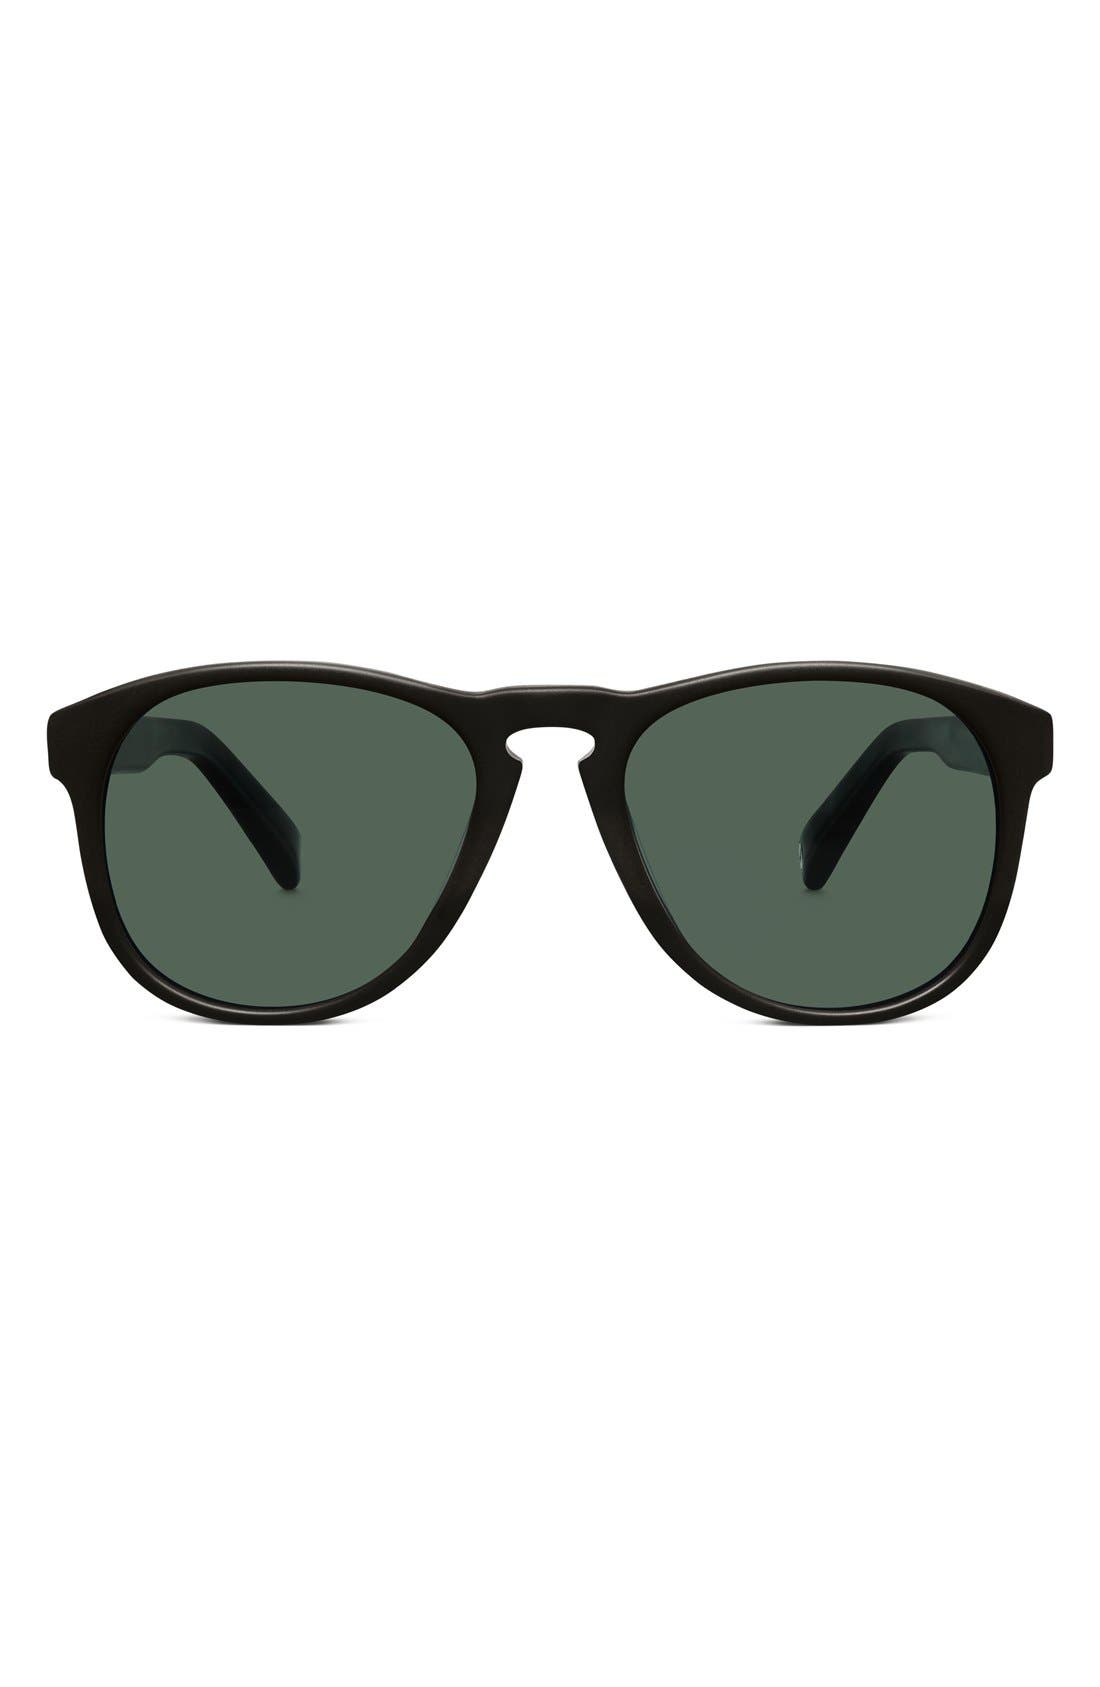 WARBY PARKER 'Griffin' 53mm Polarized Sunglasses, Main, color, 001